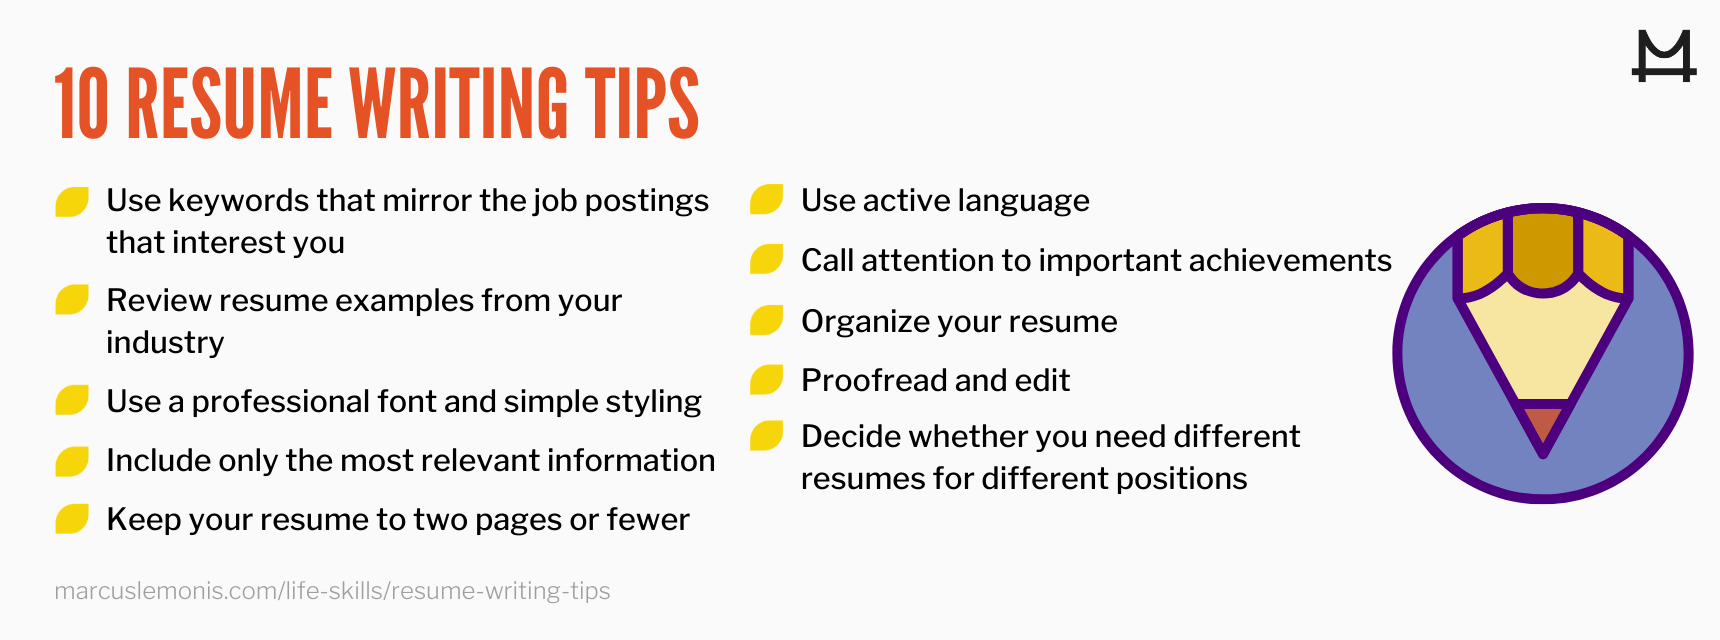 List of 10 resume writing tips